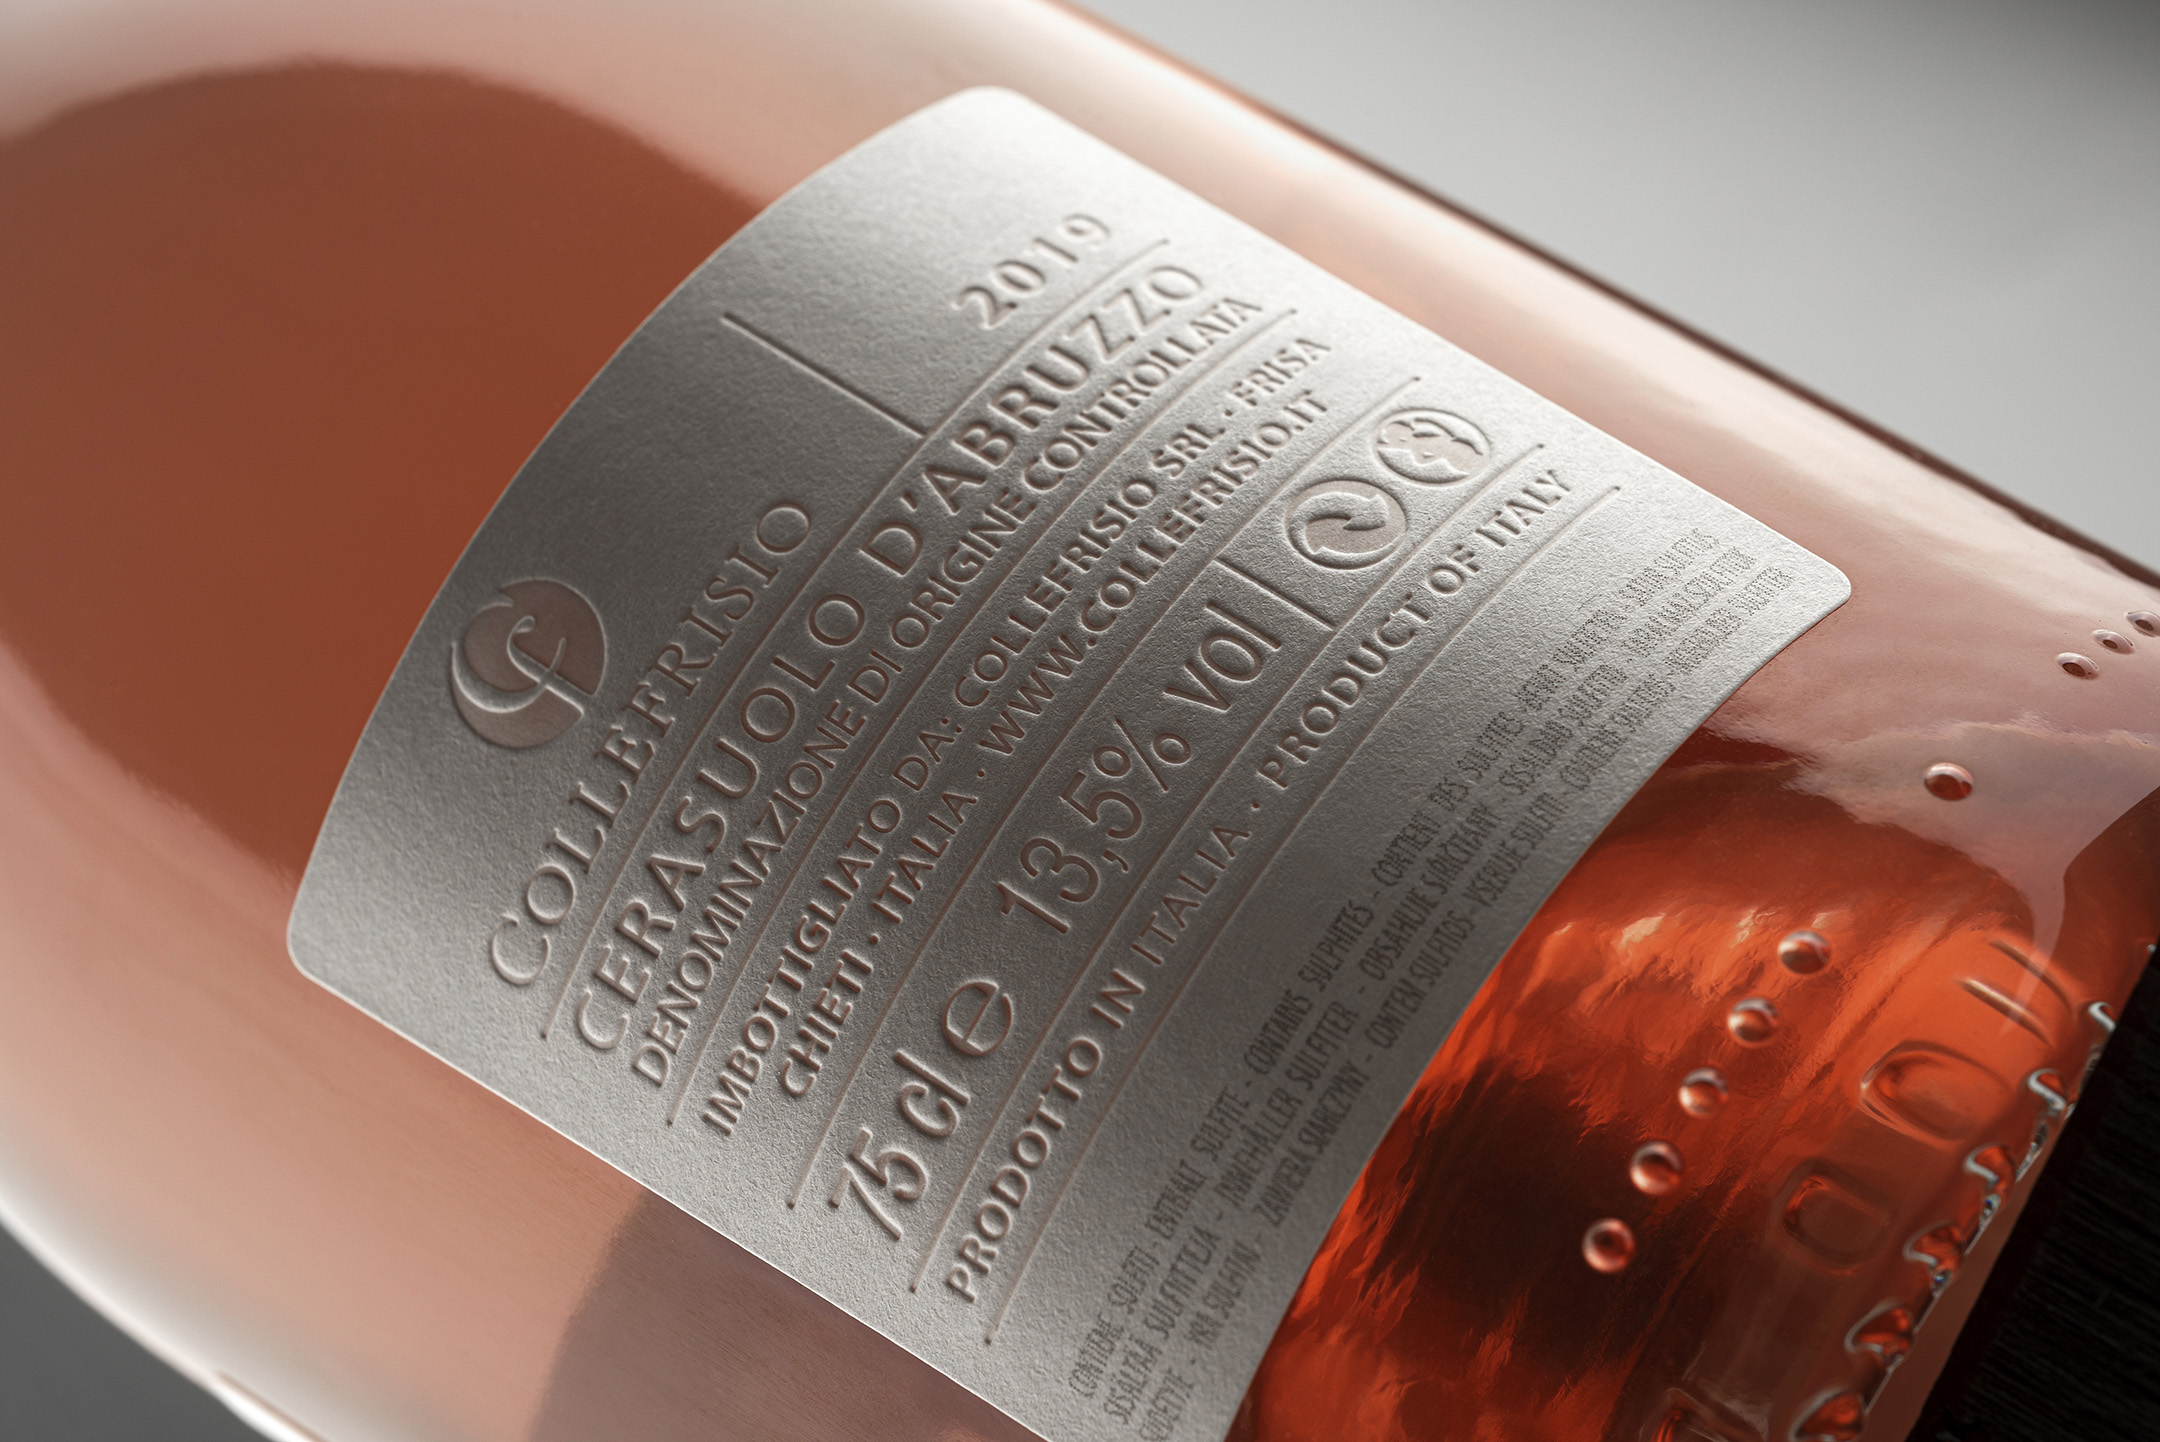 collefrisio-cerasuolo-abruzzo-2020-awards-packaging-spaziodipaolo-label-wine-italy-rose-winedesign-vinitaly-5